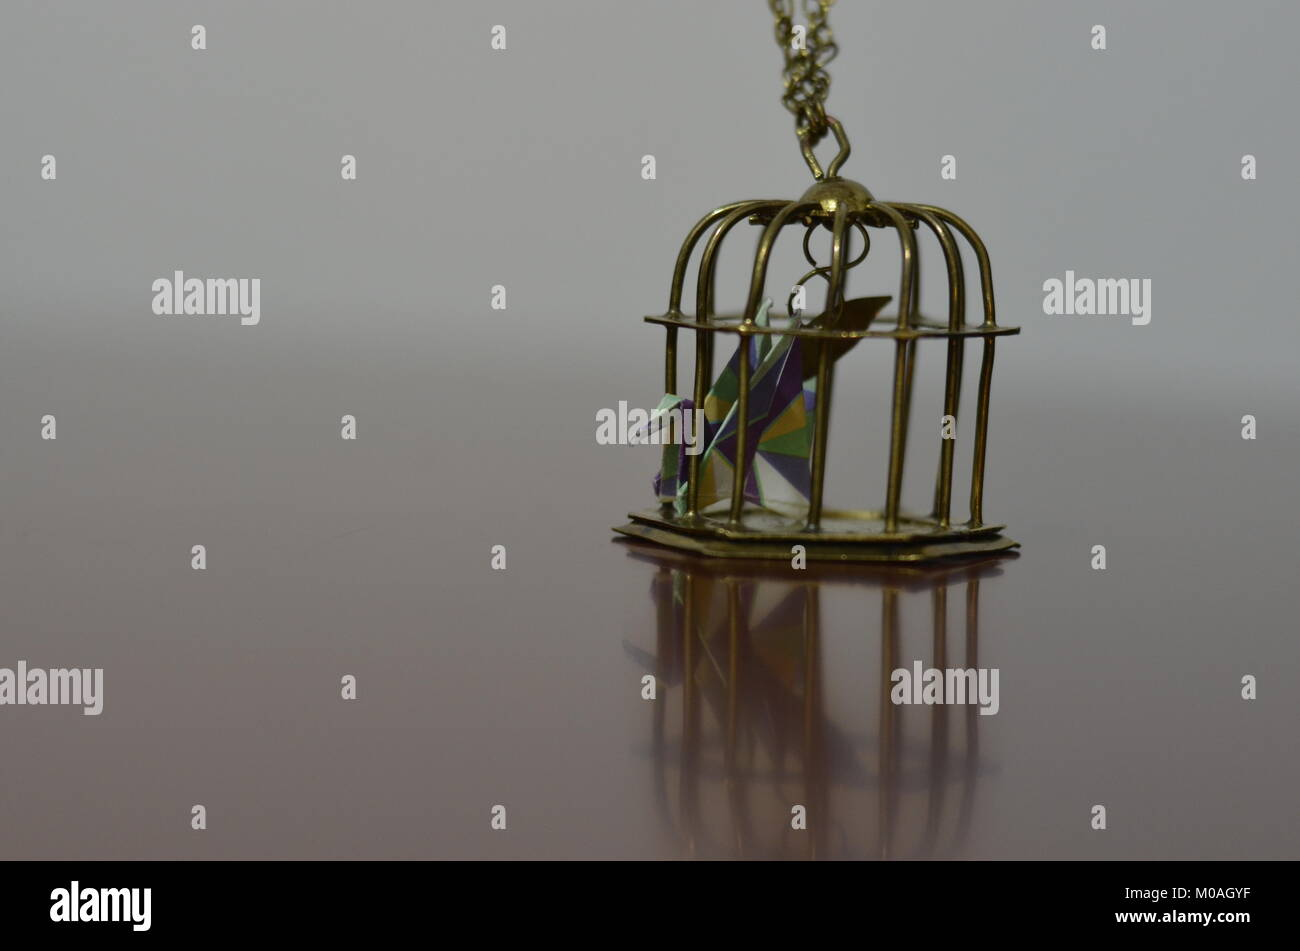 Locked In Cage Stock Photos & Locked In Cage Stock Images - Alamy